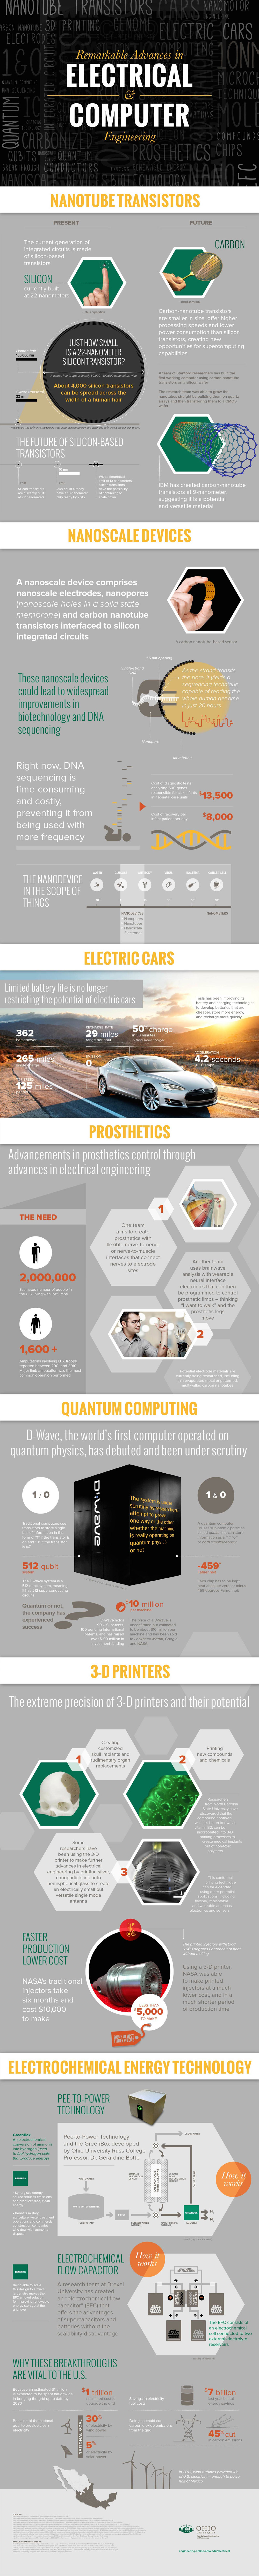 Remarkable Advances in Electrical and Computer Engineering